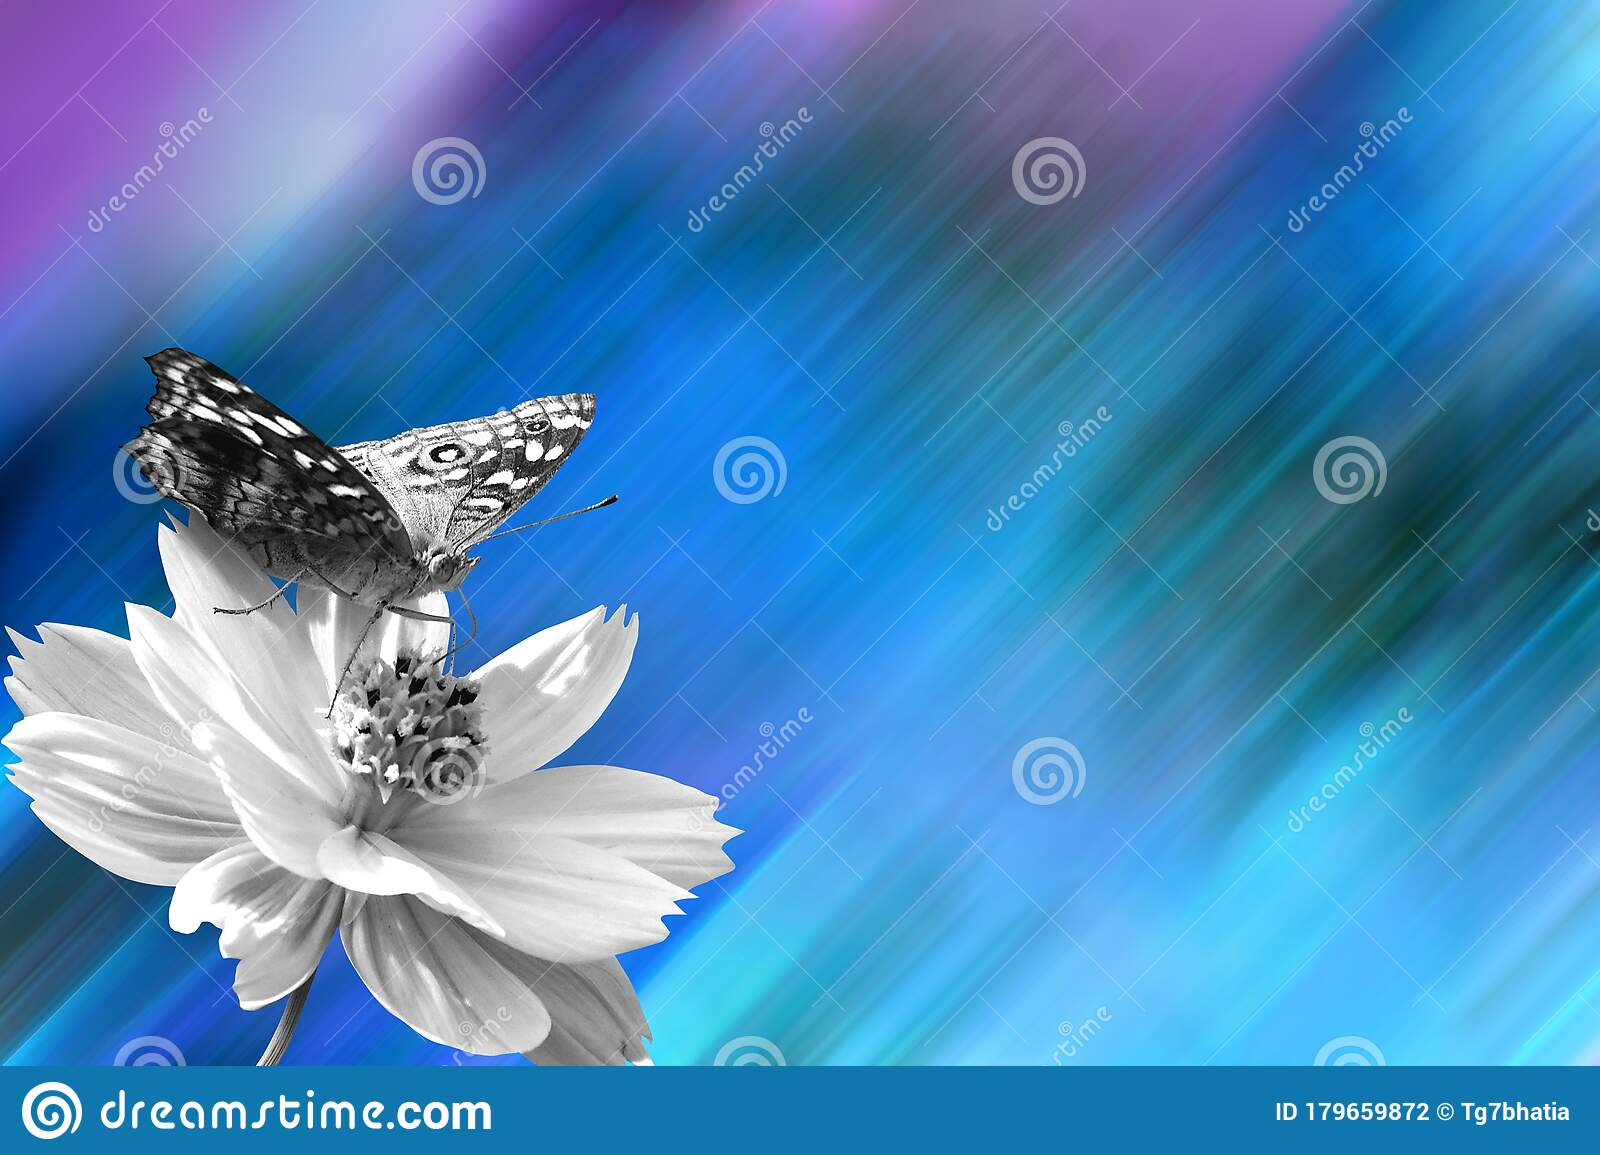 Desktop Wallpaper Butterfly Sip Nectar Of Cosmos Flower Stock Photo Image Of Desktop Aspect 179659872